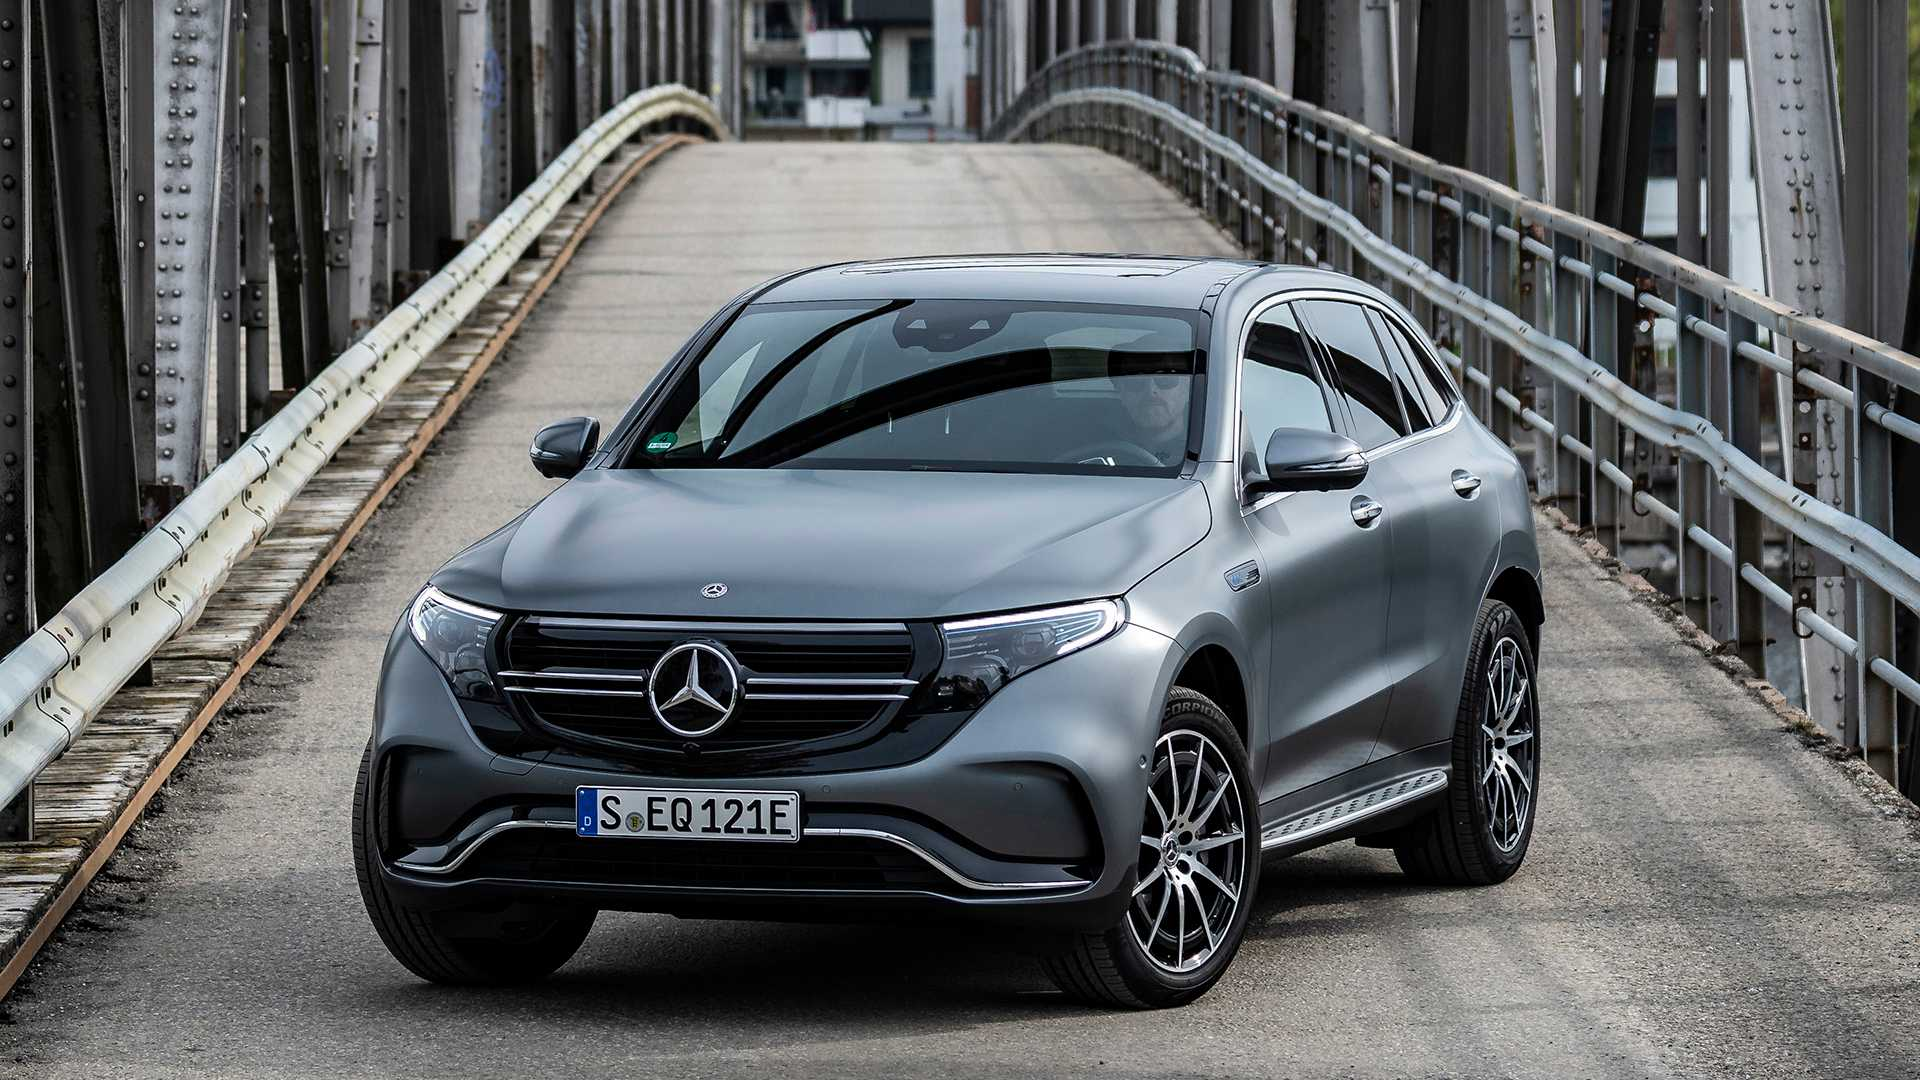 2020 Mercedes EQC Pricing Announced, Cheaper Than Audi E-Tron